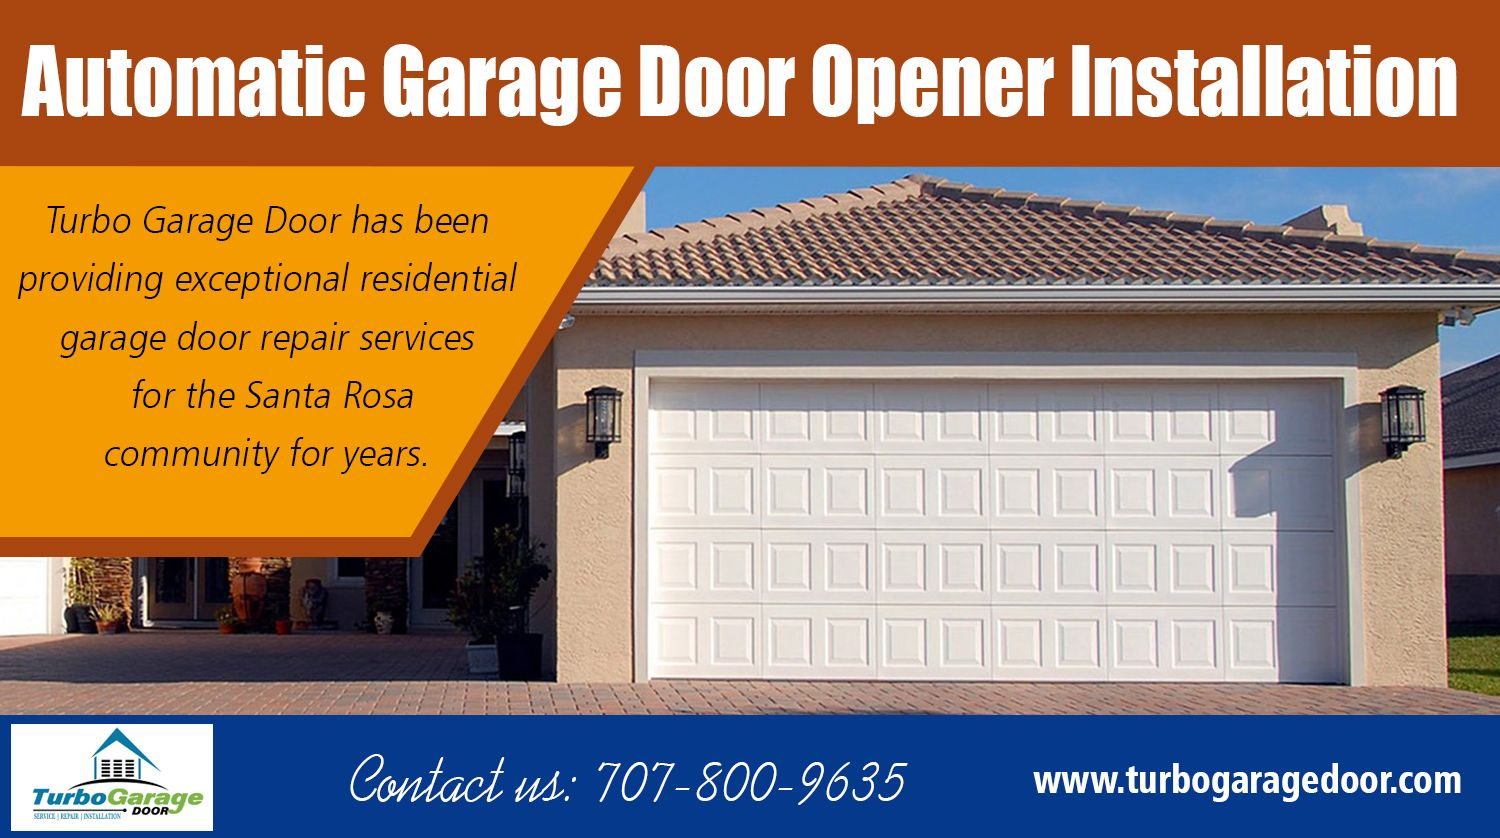 Automatic Garage Door Opener Installation For Homes And Businesses